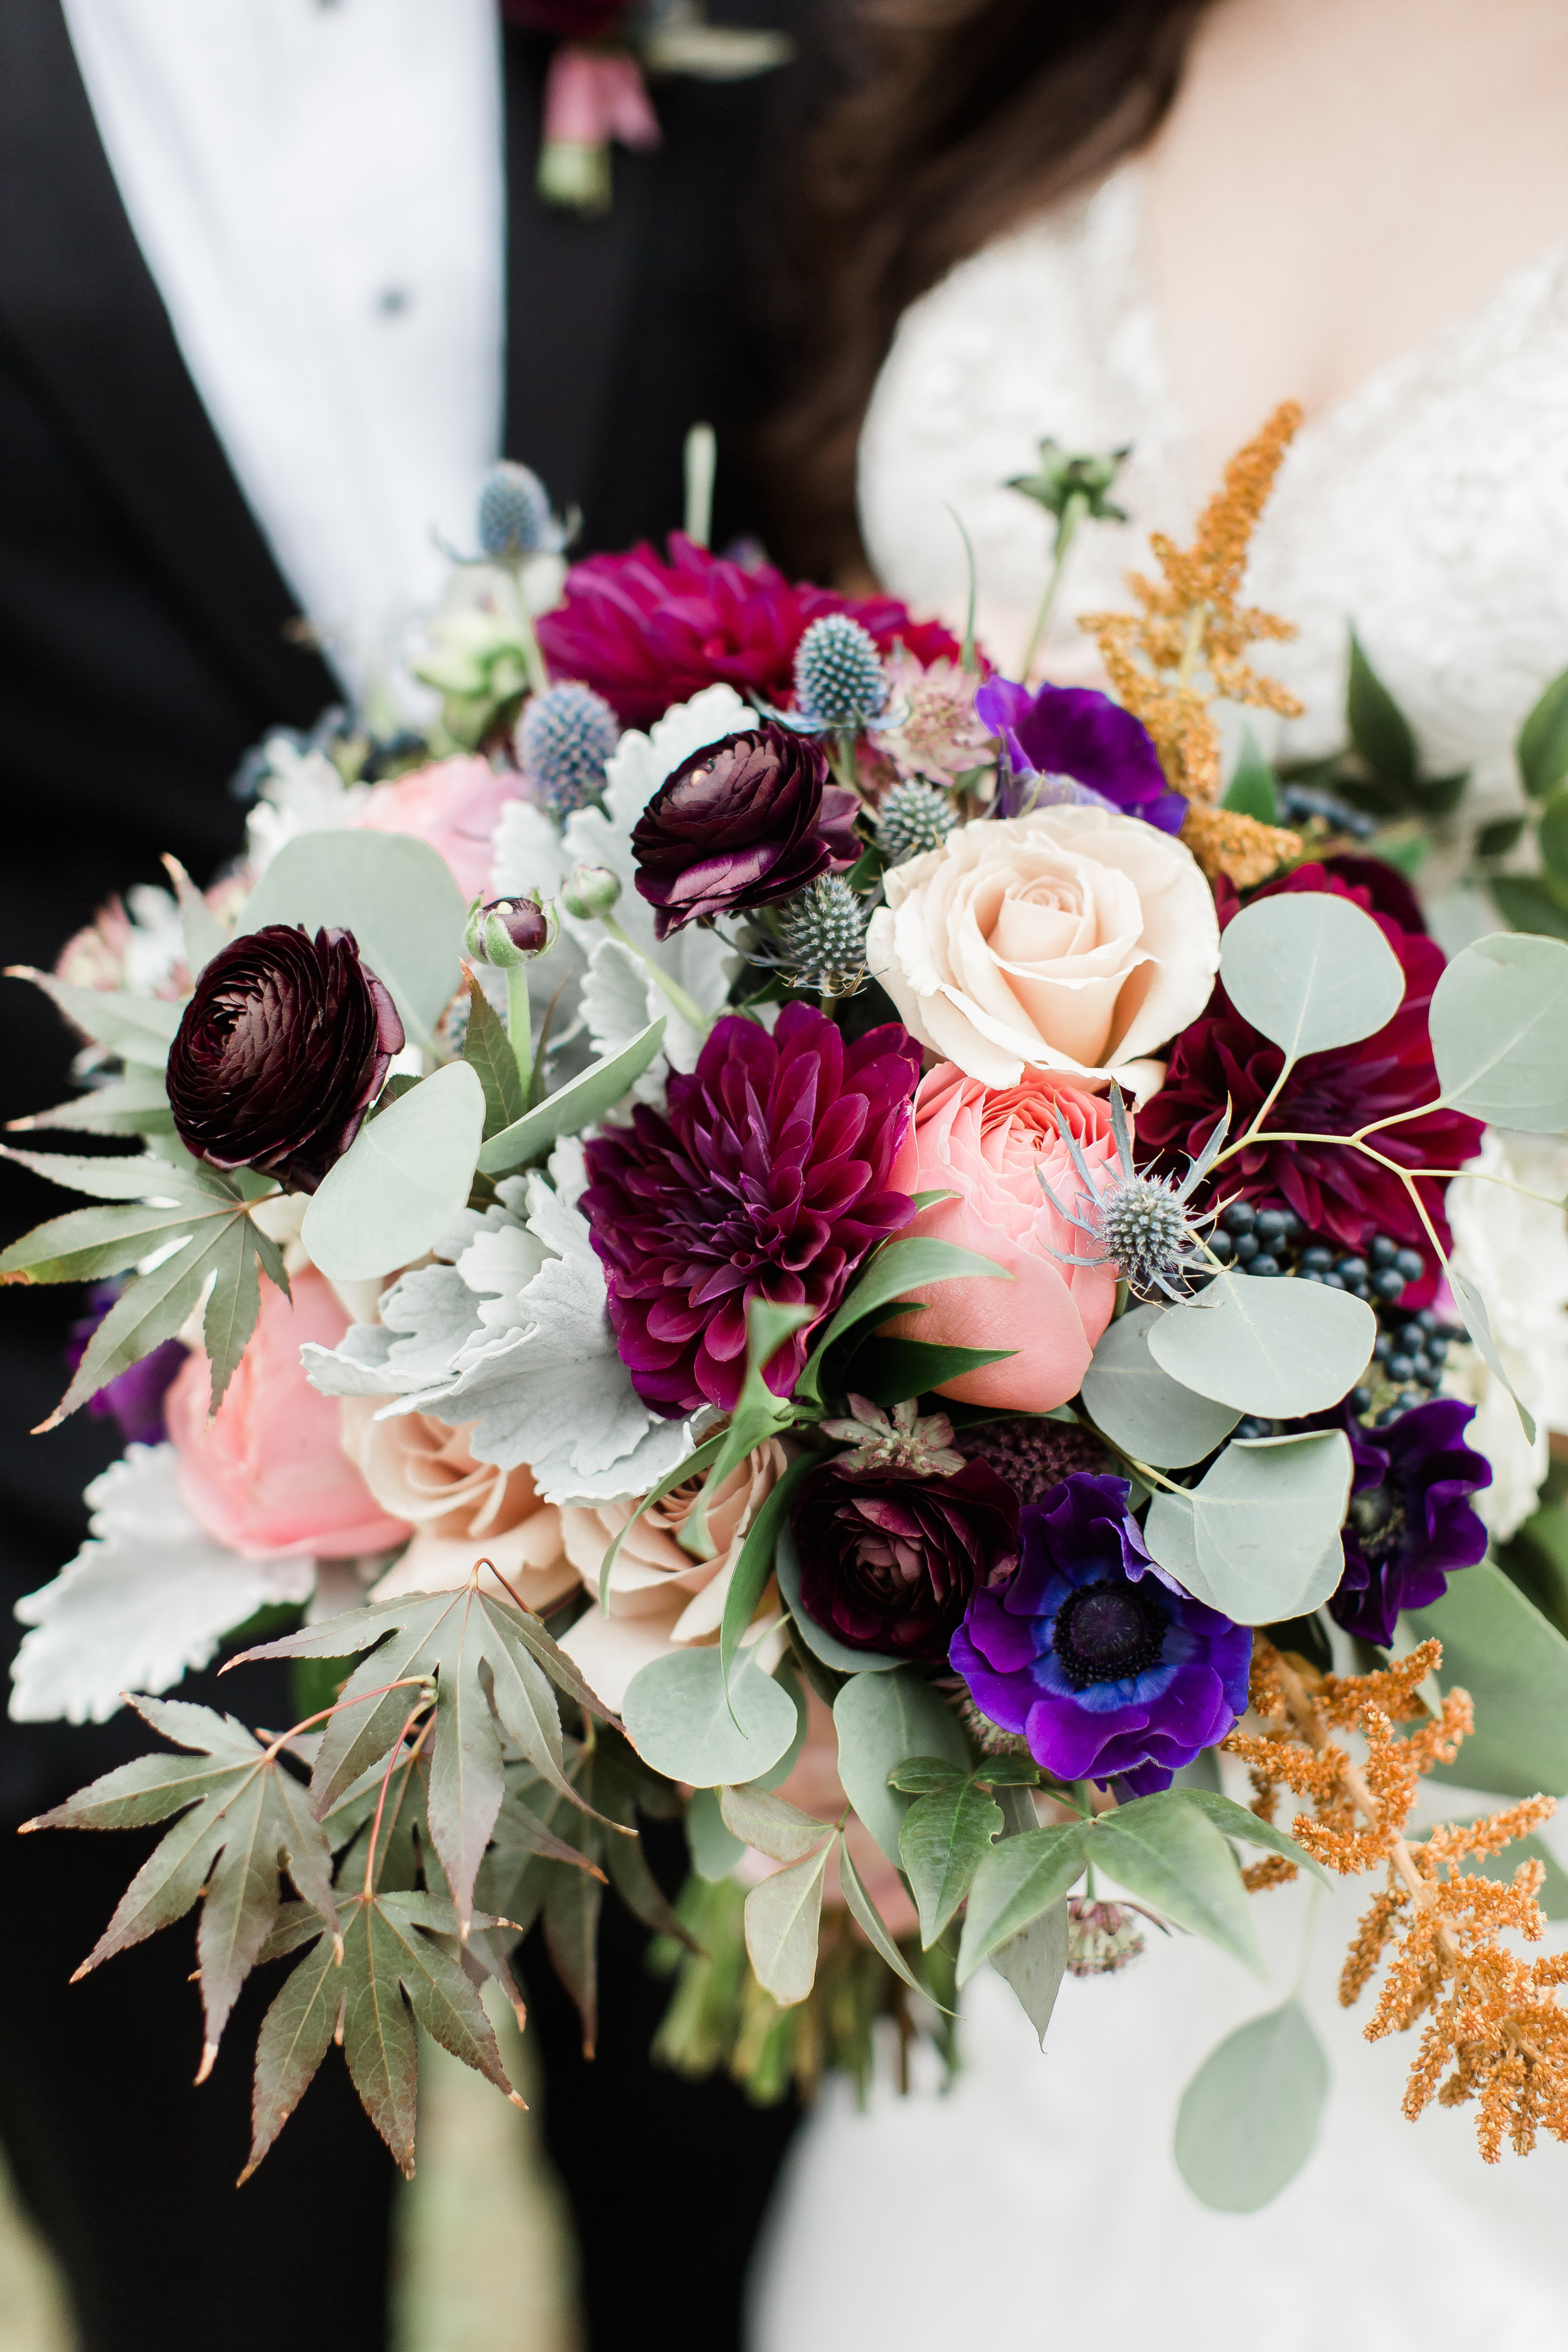 23 FALL WEDDING BOUQUET IDEAS TO INSPIRE YOUR BIG DAY - Photo By Candice Adelle Photography